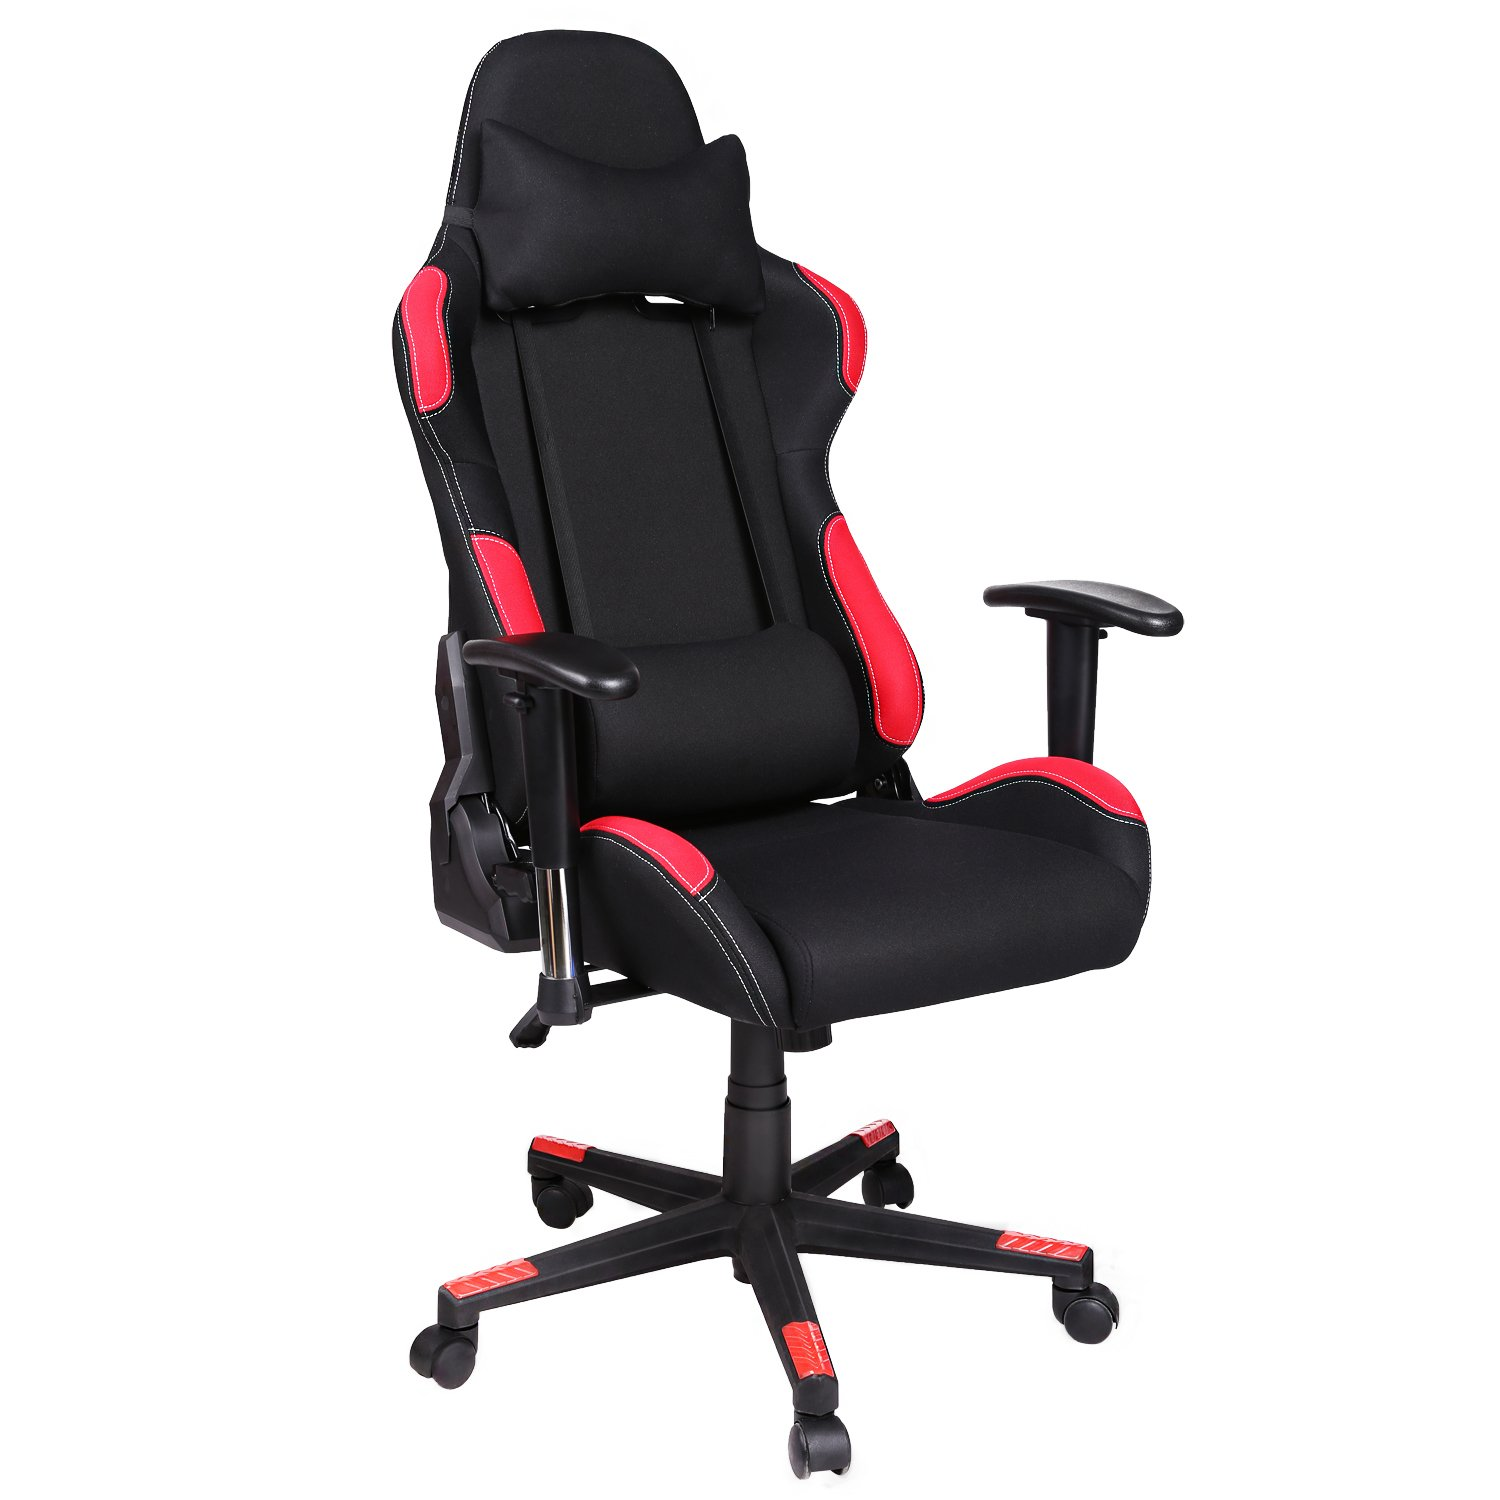 Homdox Executive Racing Gaming Chair,Durable Metal Frame Swivel Ergonomic Breathable High Back PU Leather Computer Desk Seat Office Chair Furniture with Lumbar Support and Headrest for Adults